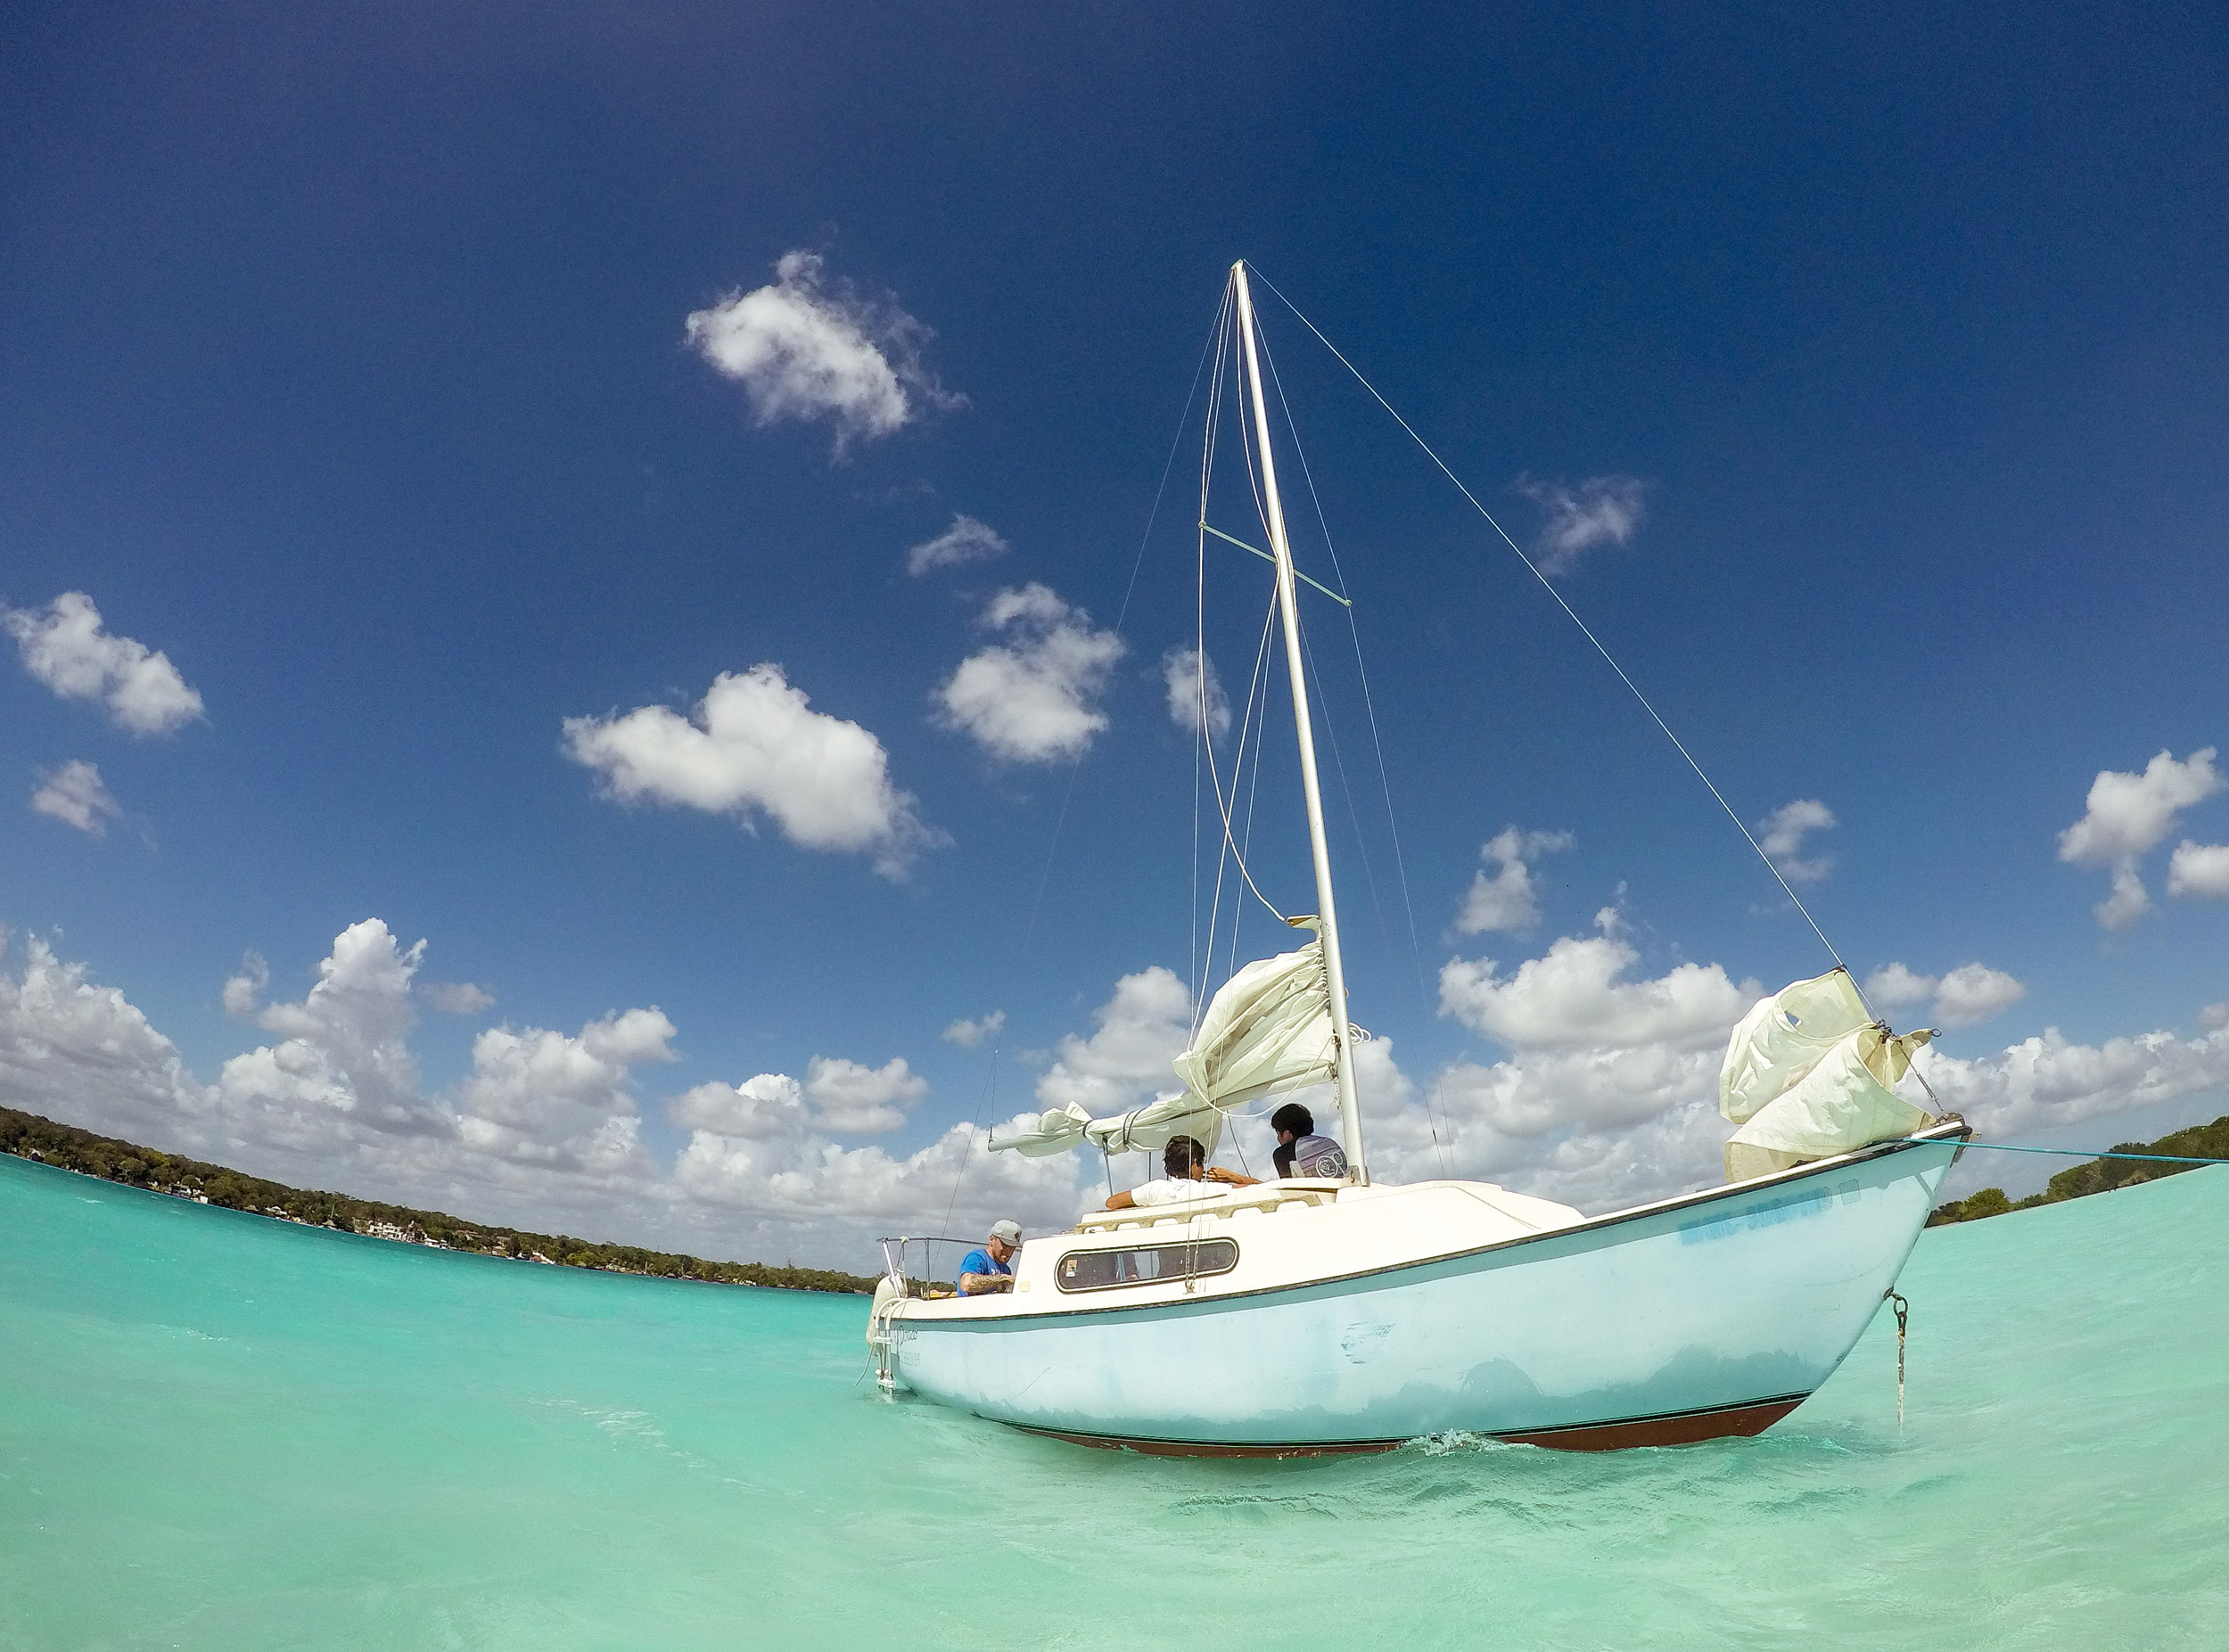 Sailing Tours in Bacalar, Mexico